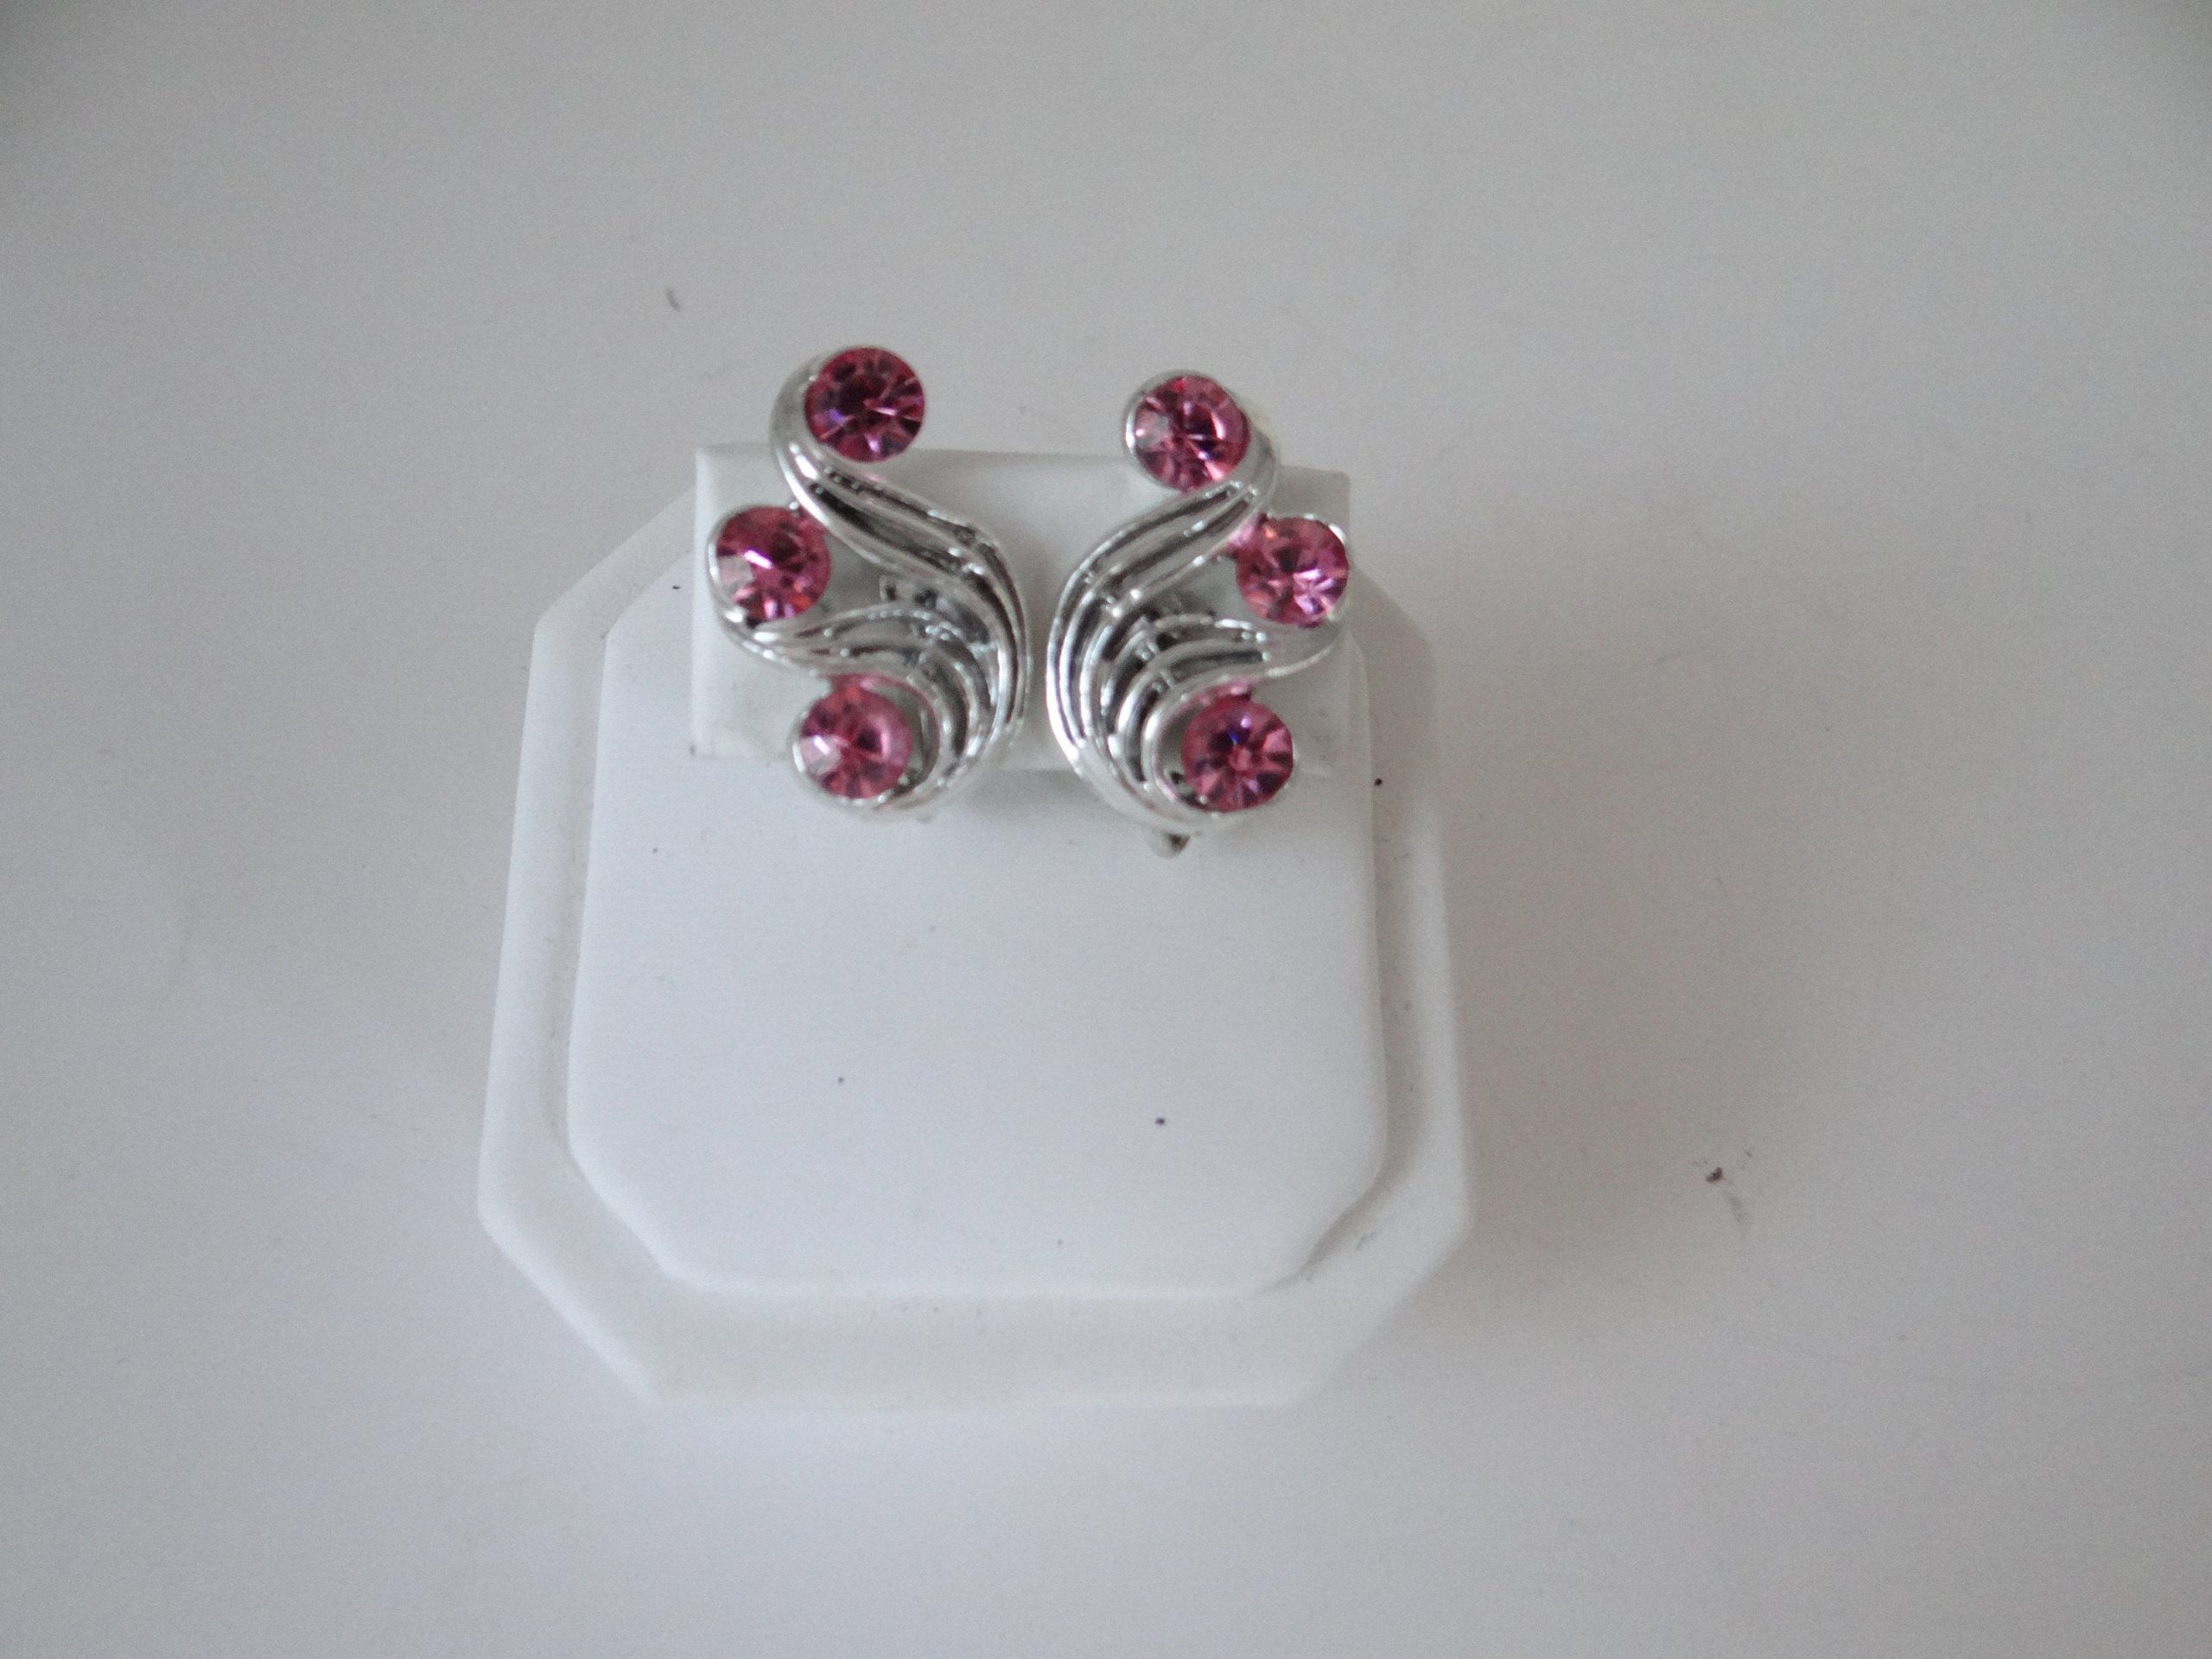 Signed Stunning 1105 Versatile Eye Catching Vintage PINK RHINESTONE Earrings Clip On Classic Goldentone Beautiful Gift for Her